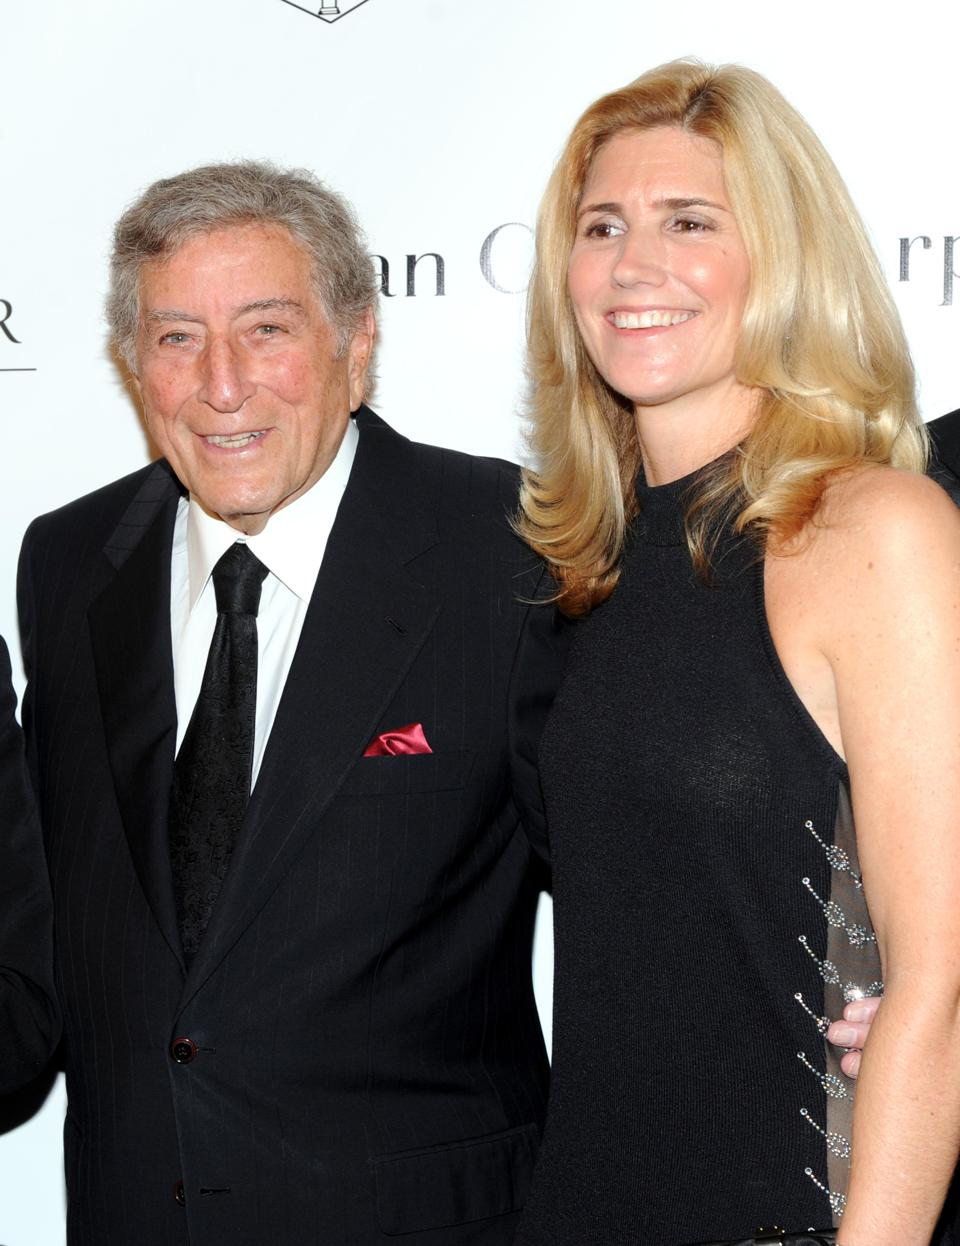 Singer Tony Bennett and his wife Susan Crow pose for photographs during the fifth annual Norman Mailer Center benefit gala at the New York Public Library on Thursday, Oct. 17, 2013, in New York. (Photo by Evan Agostini/Invision/AP)